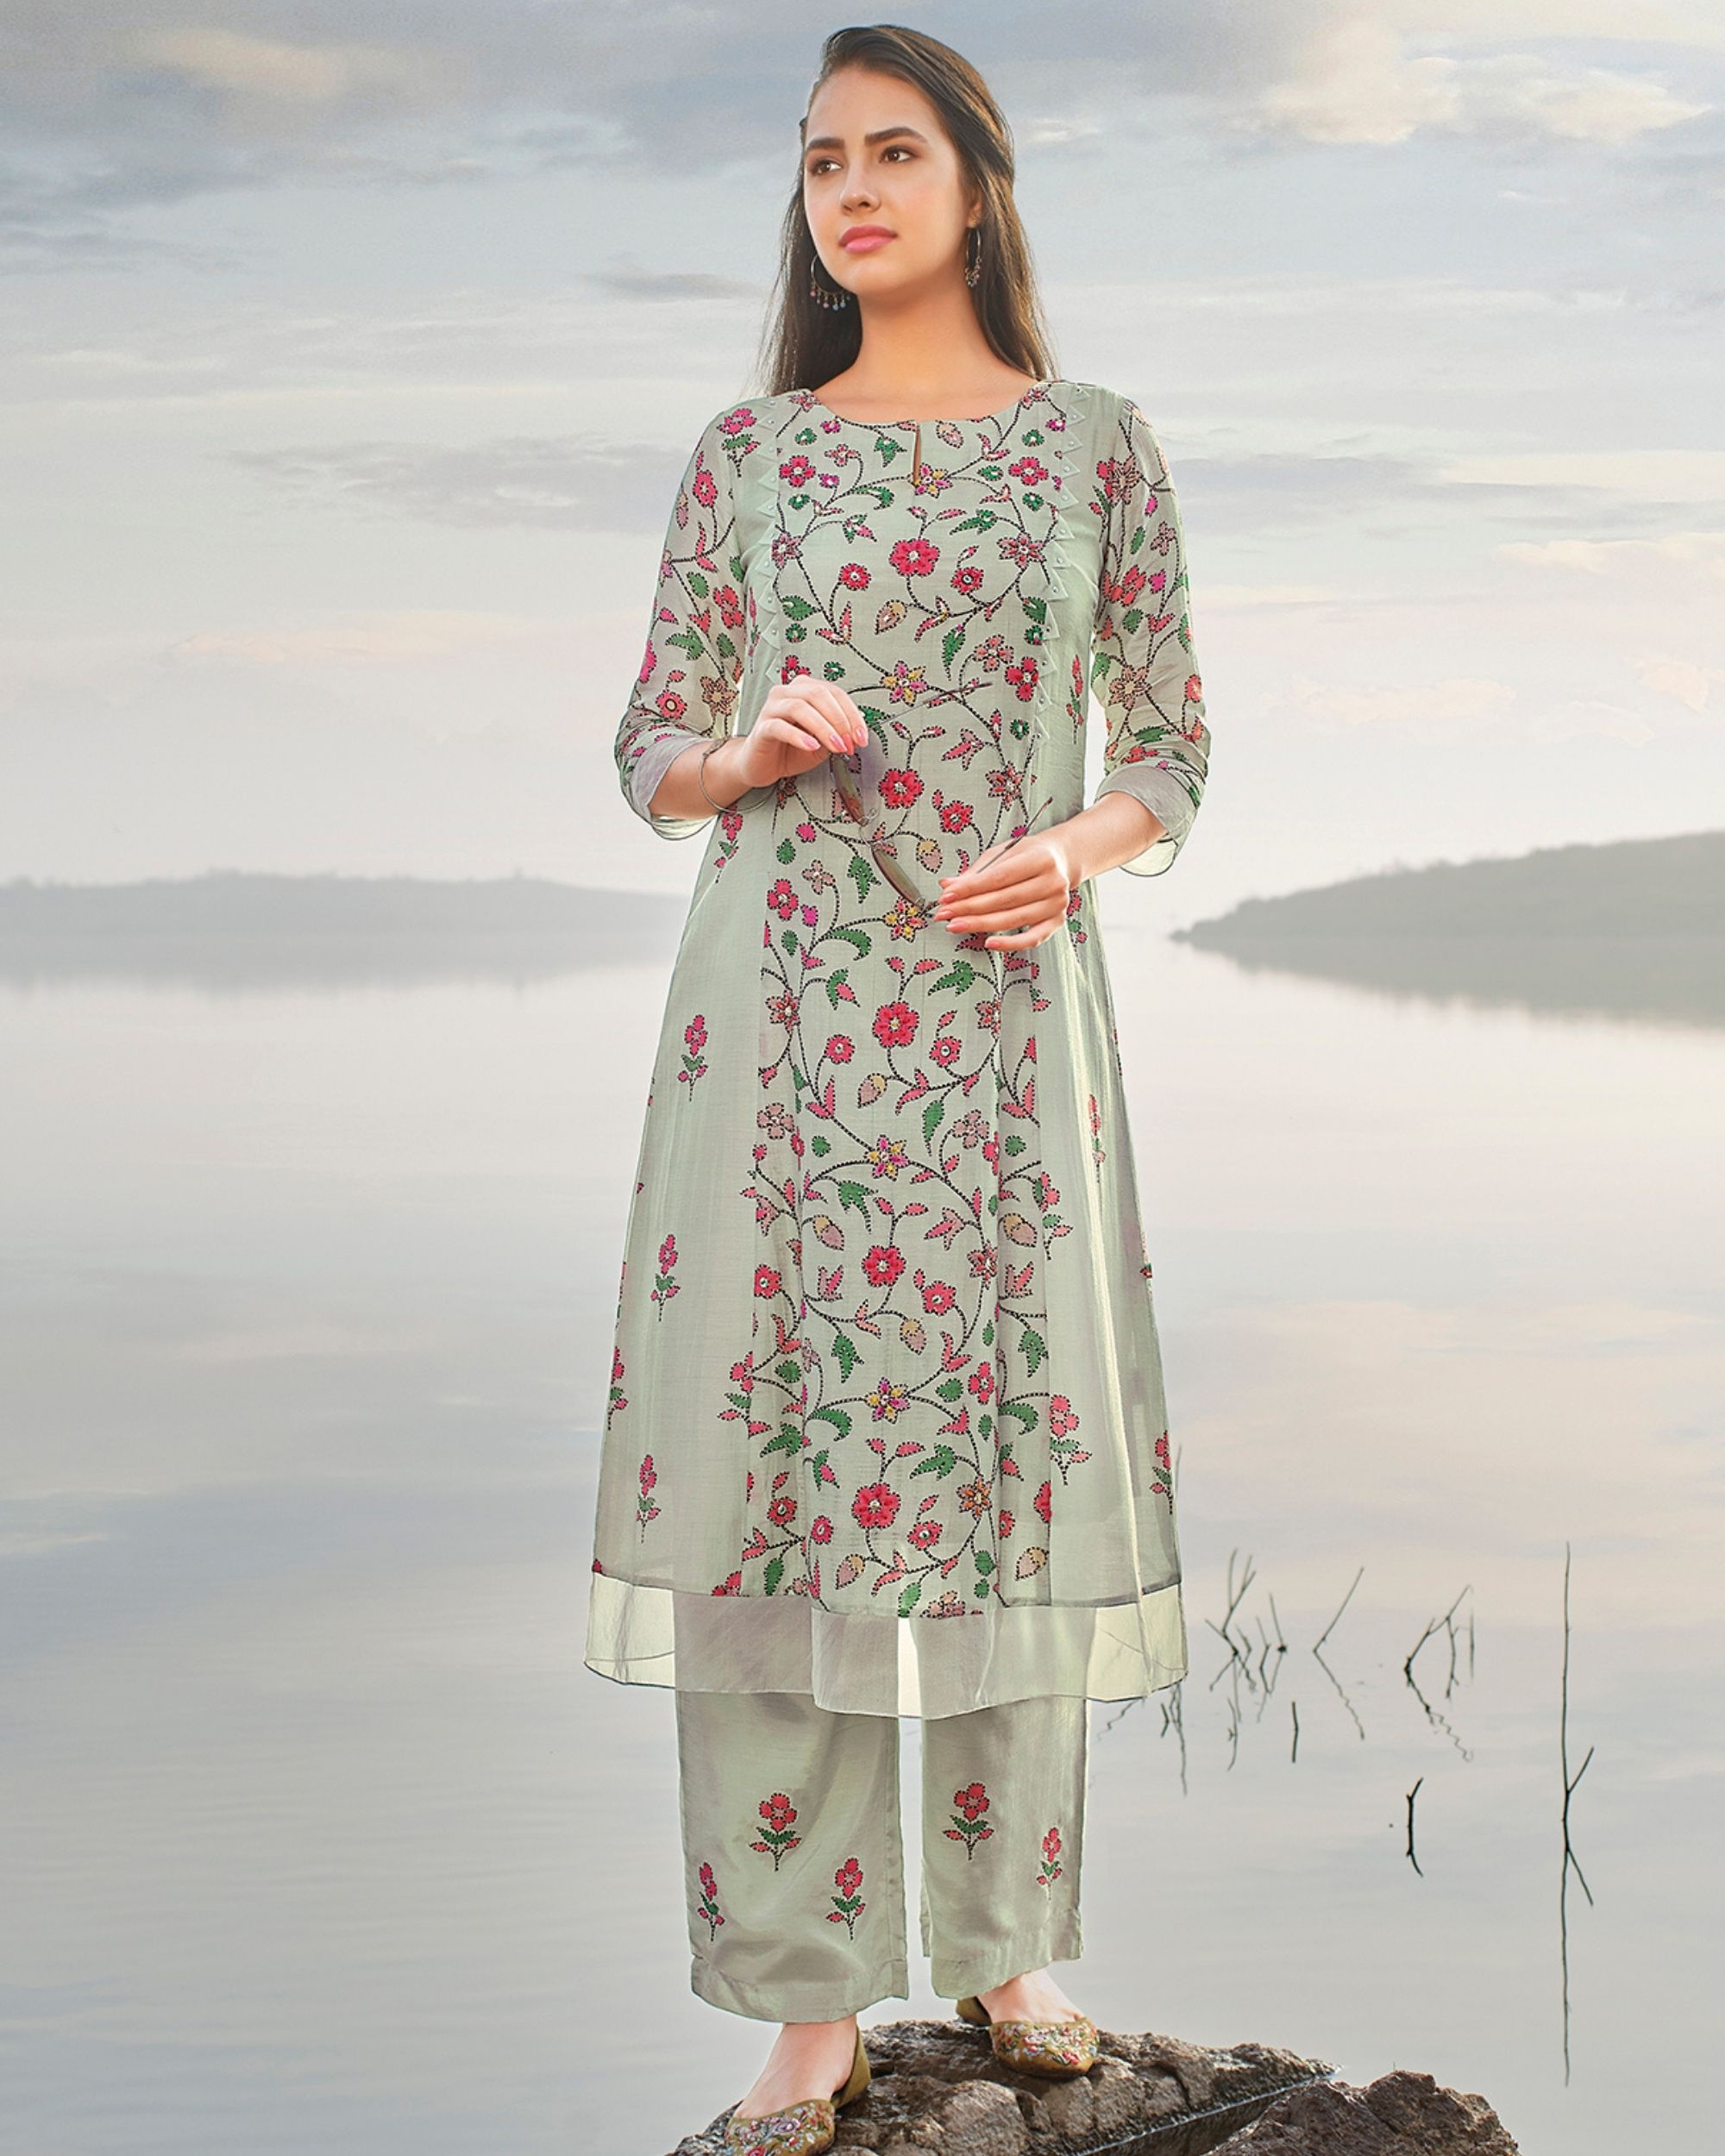 Pastel blue floral printed and embroidered kurta with pants - set of two